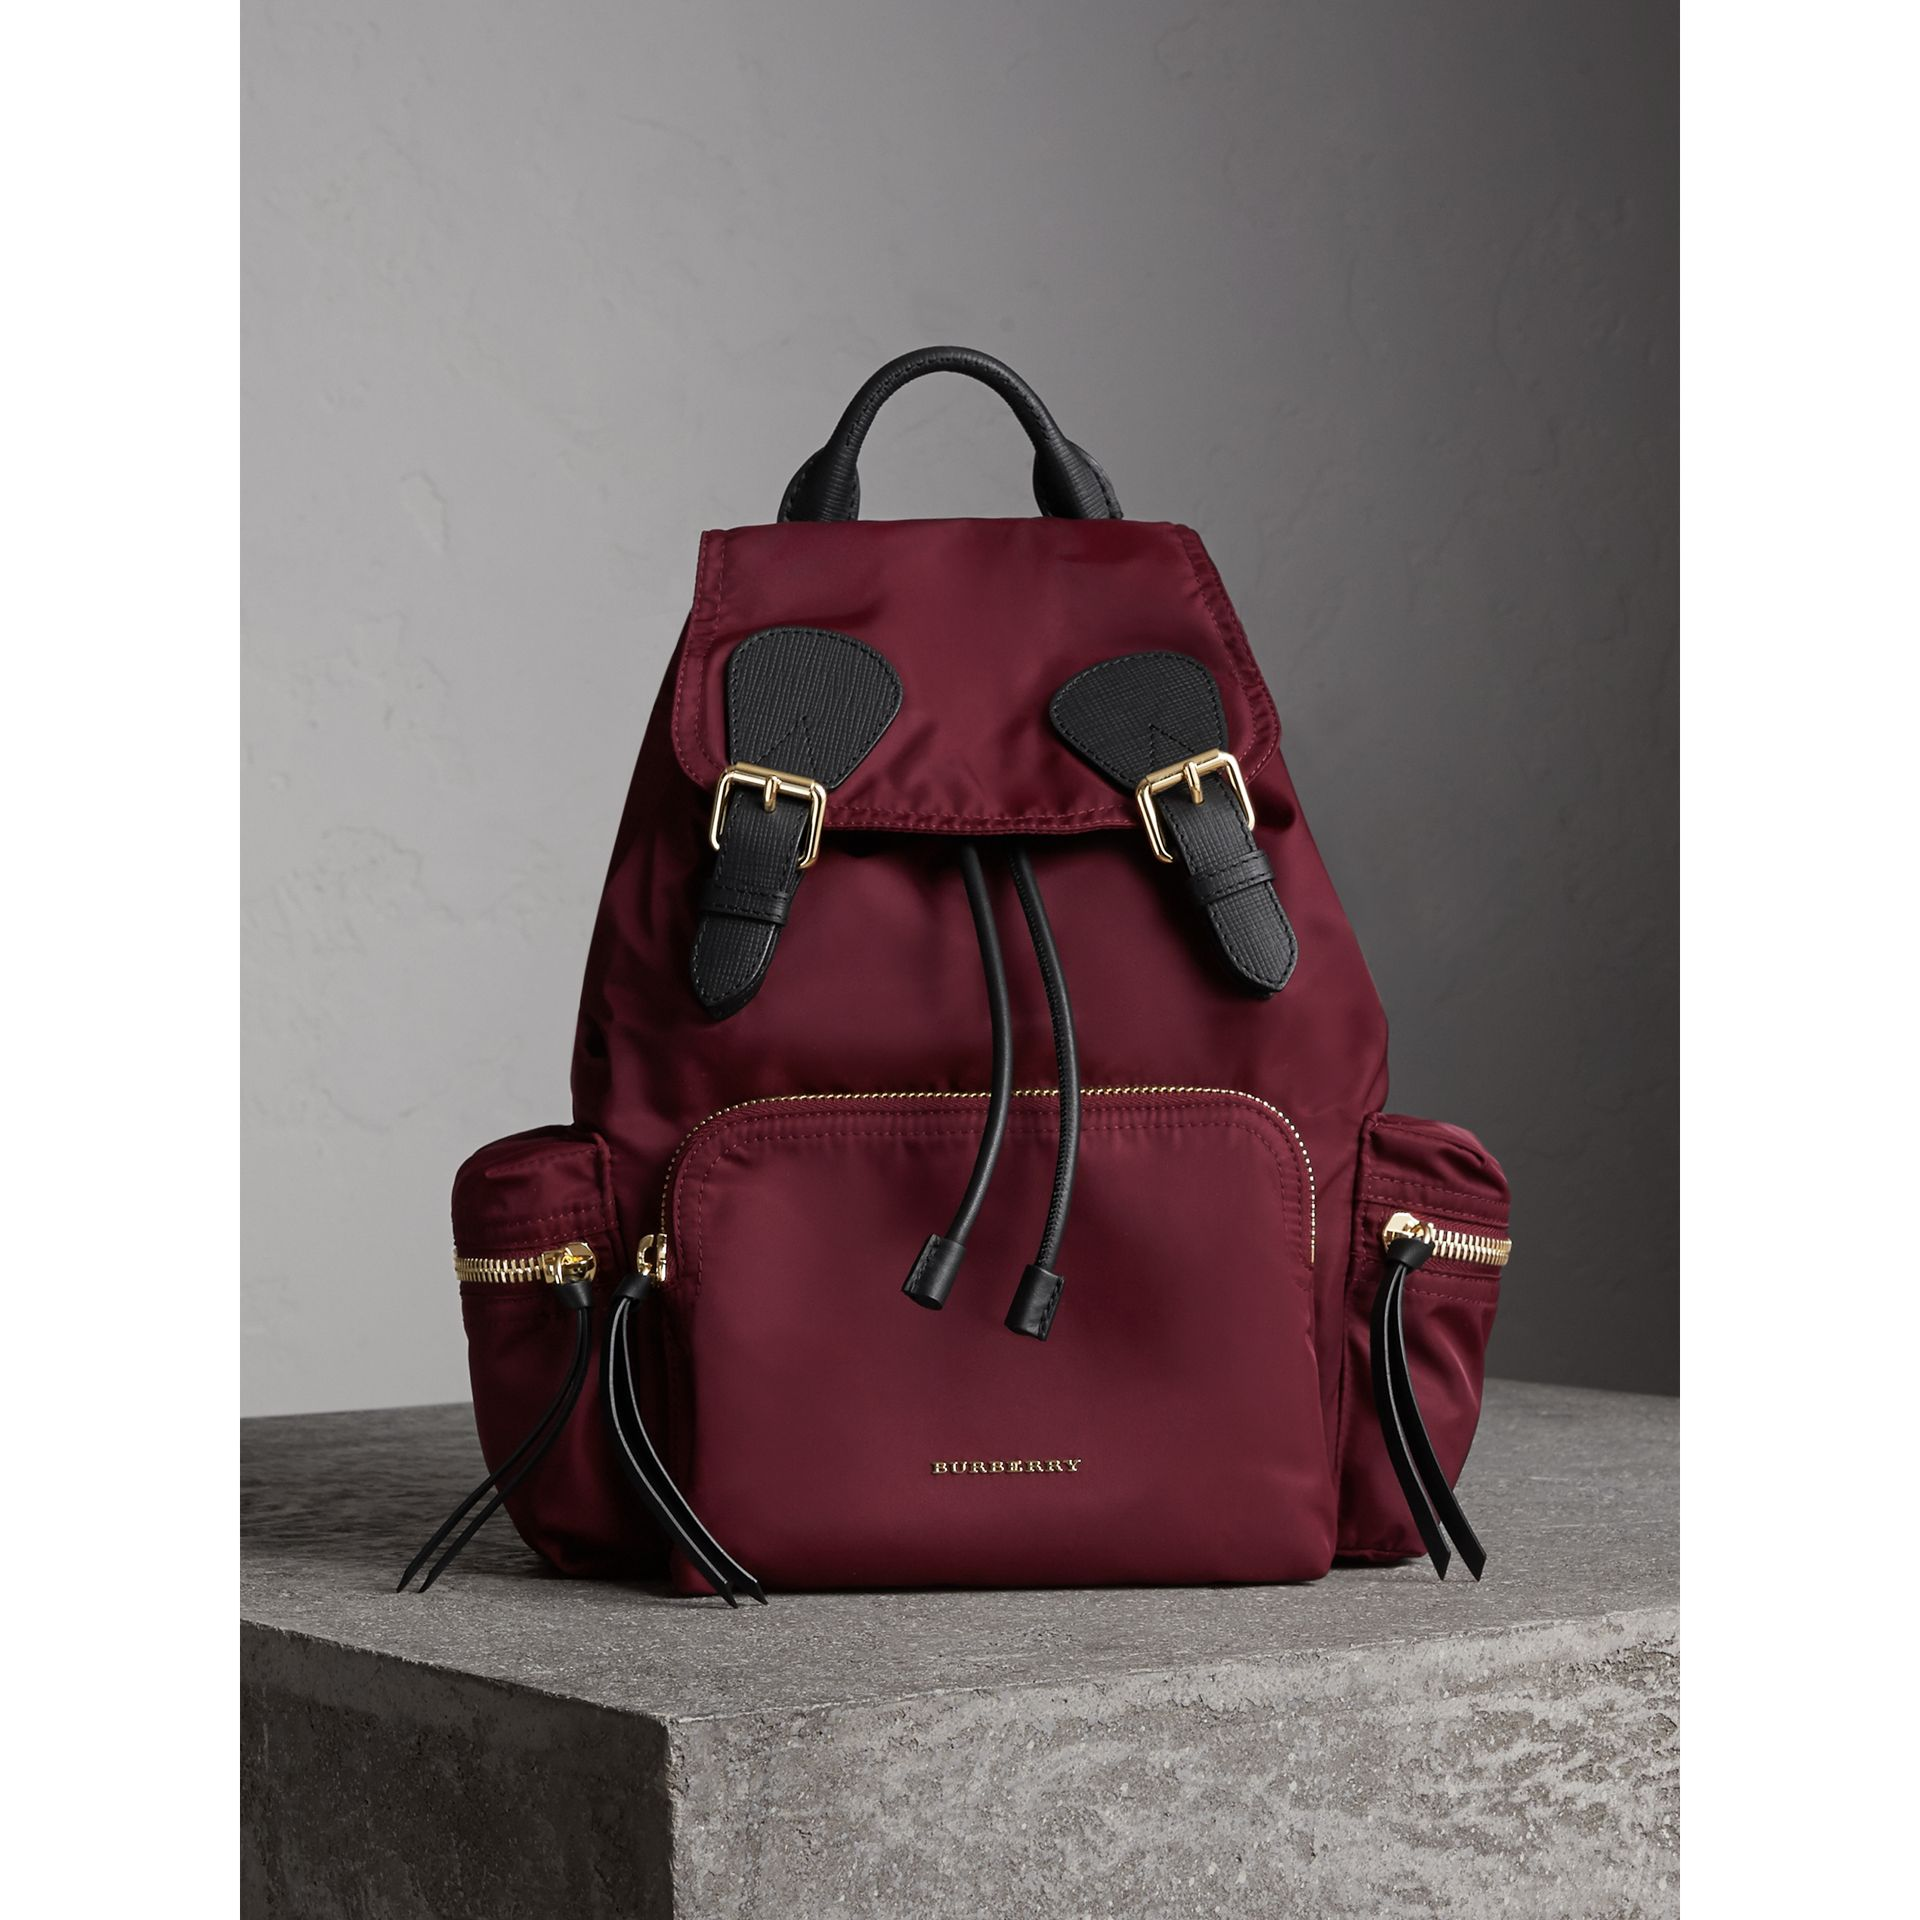 Sac The Rucksack moyen en nylon technique et cuir (Rouge Bourgogne) - Femme | Burberry - photo de la galerie 5